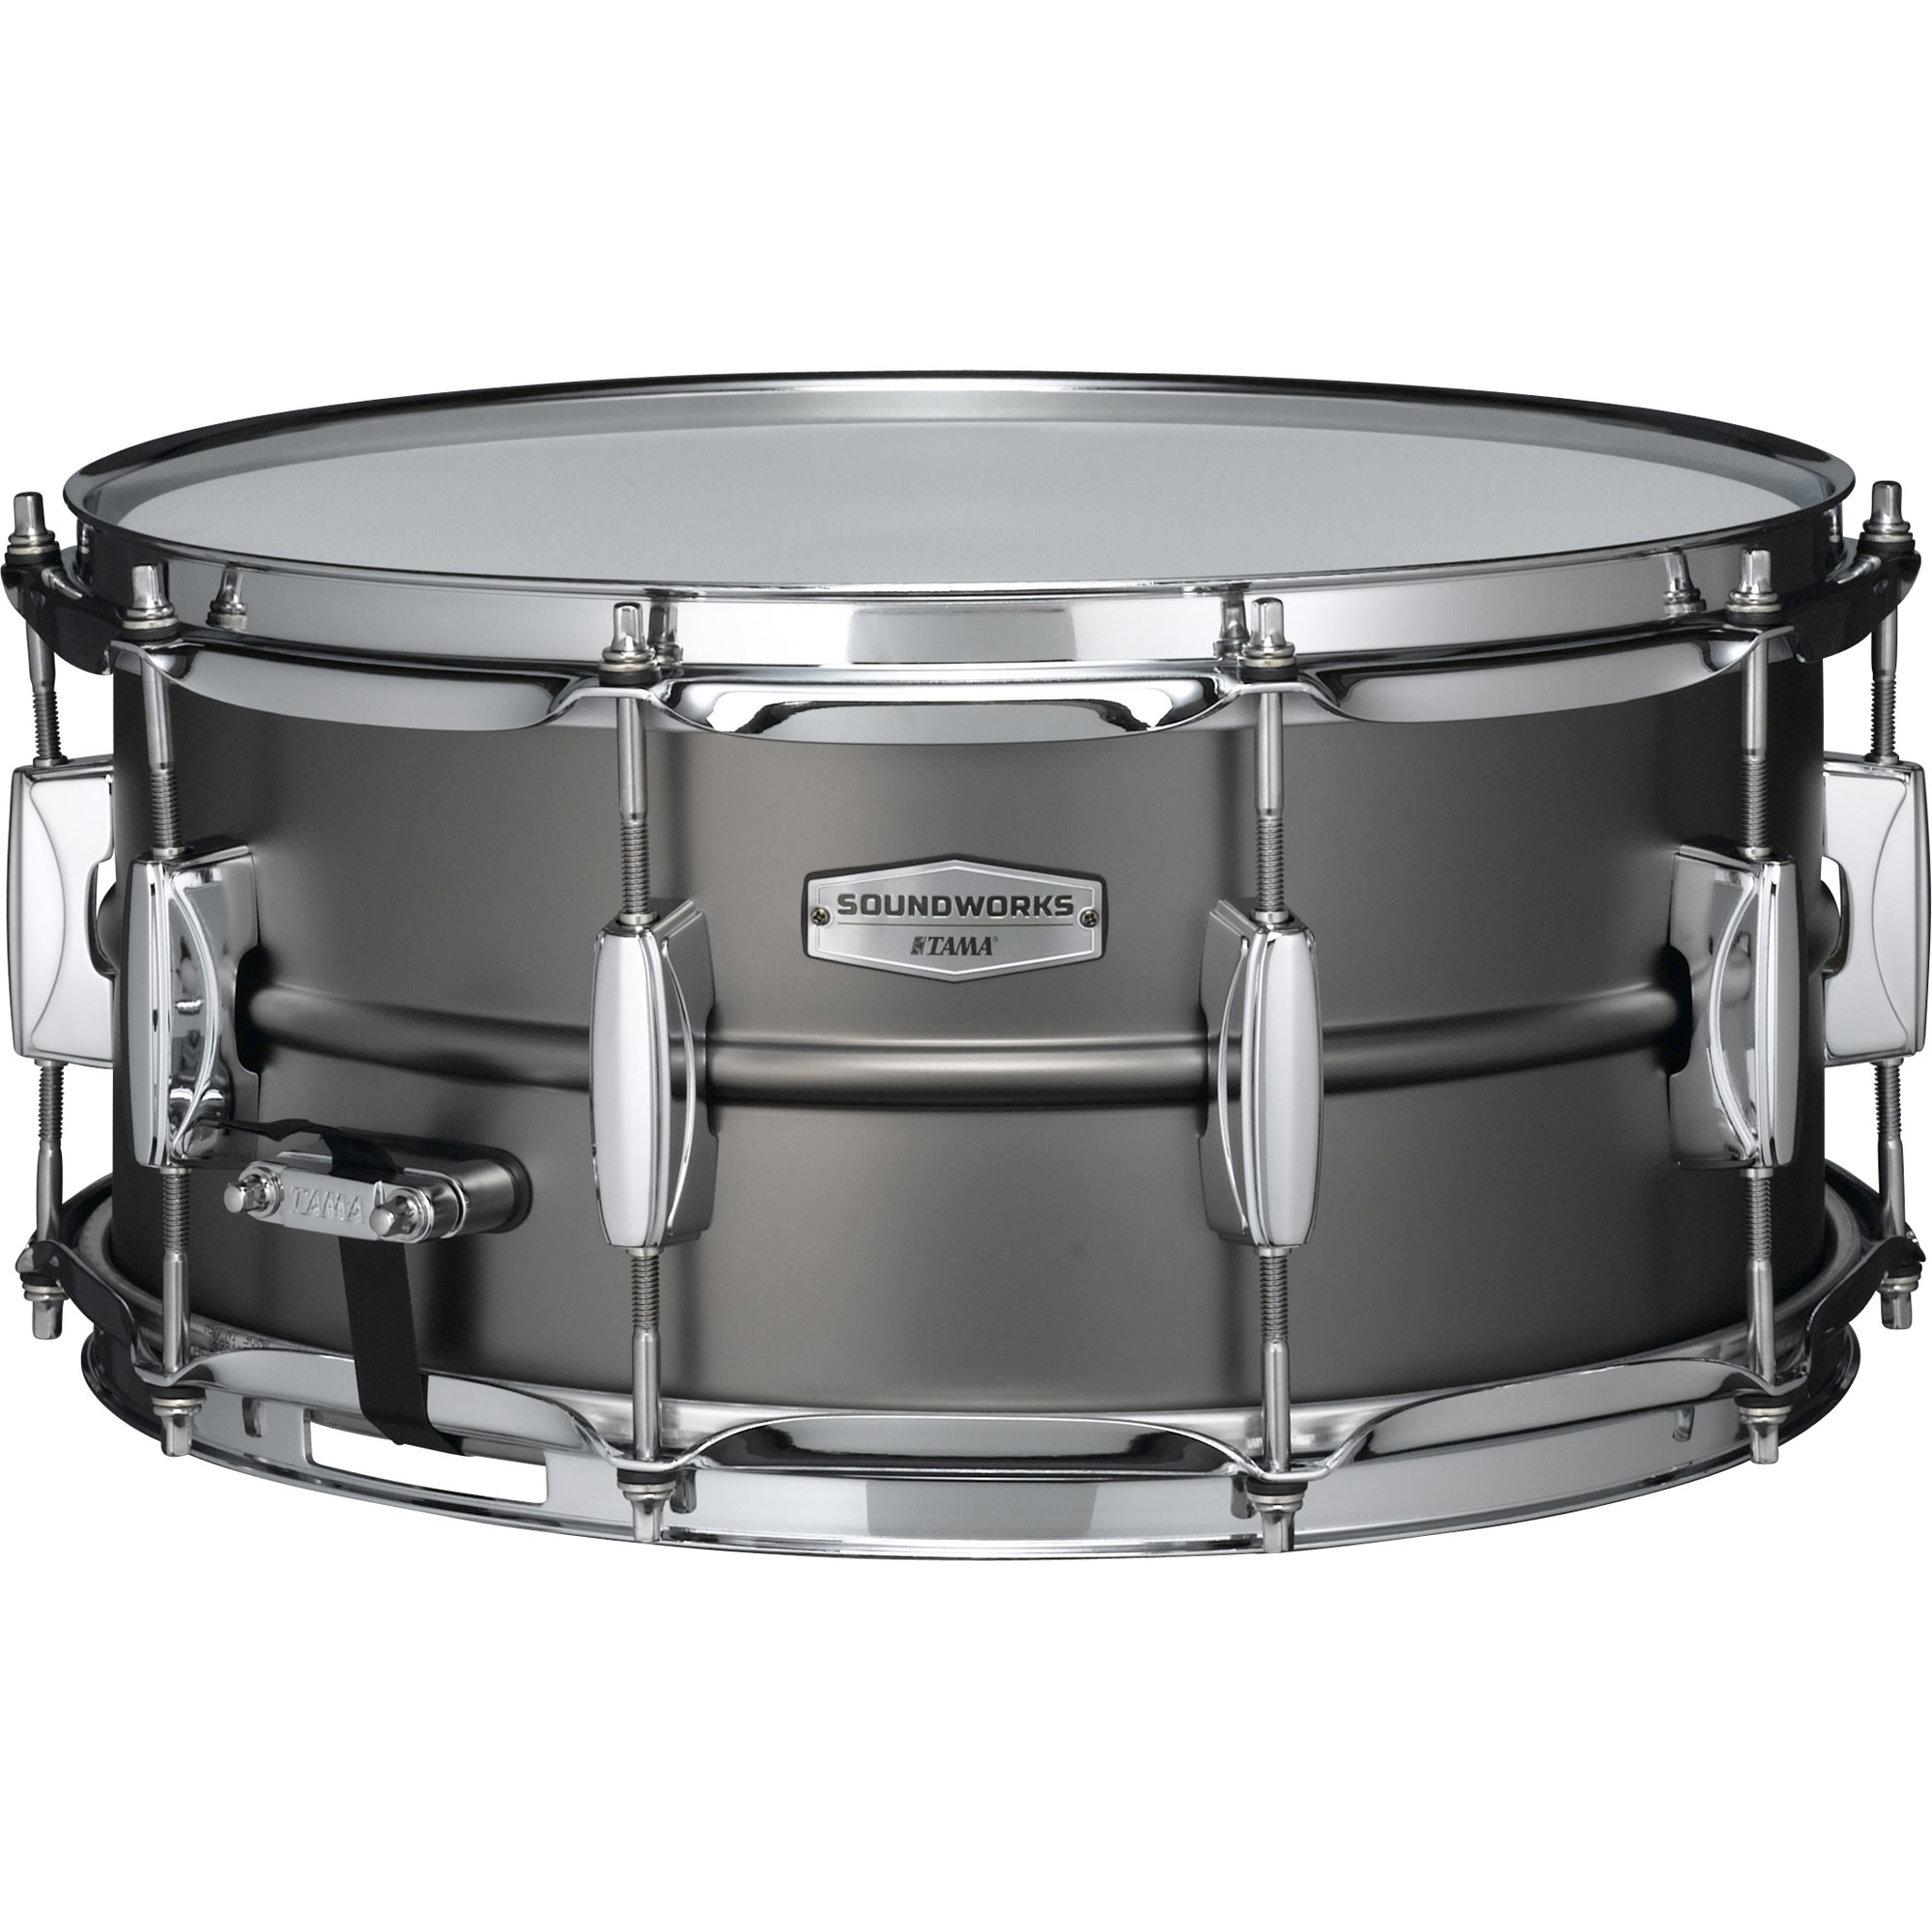 "Tama 6.5"" x 14"" Soundworks Steel Snare Drum"